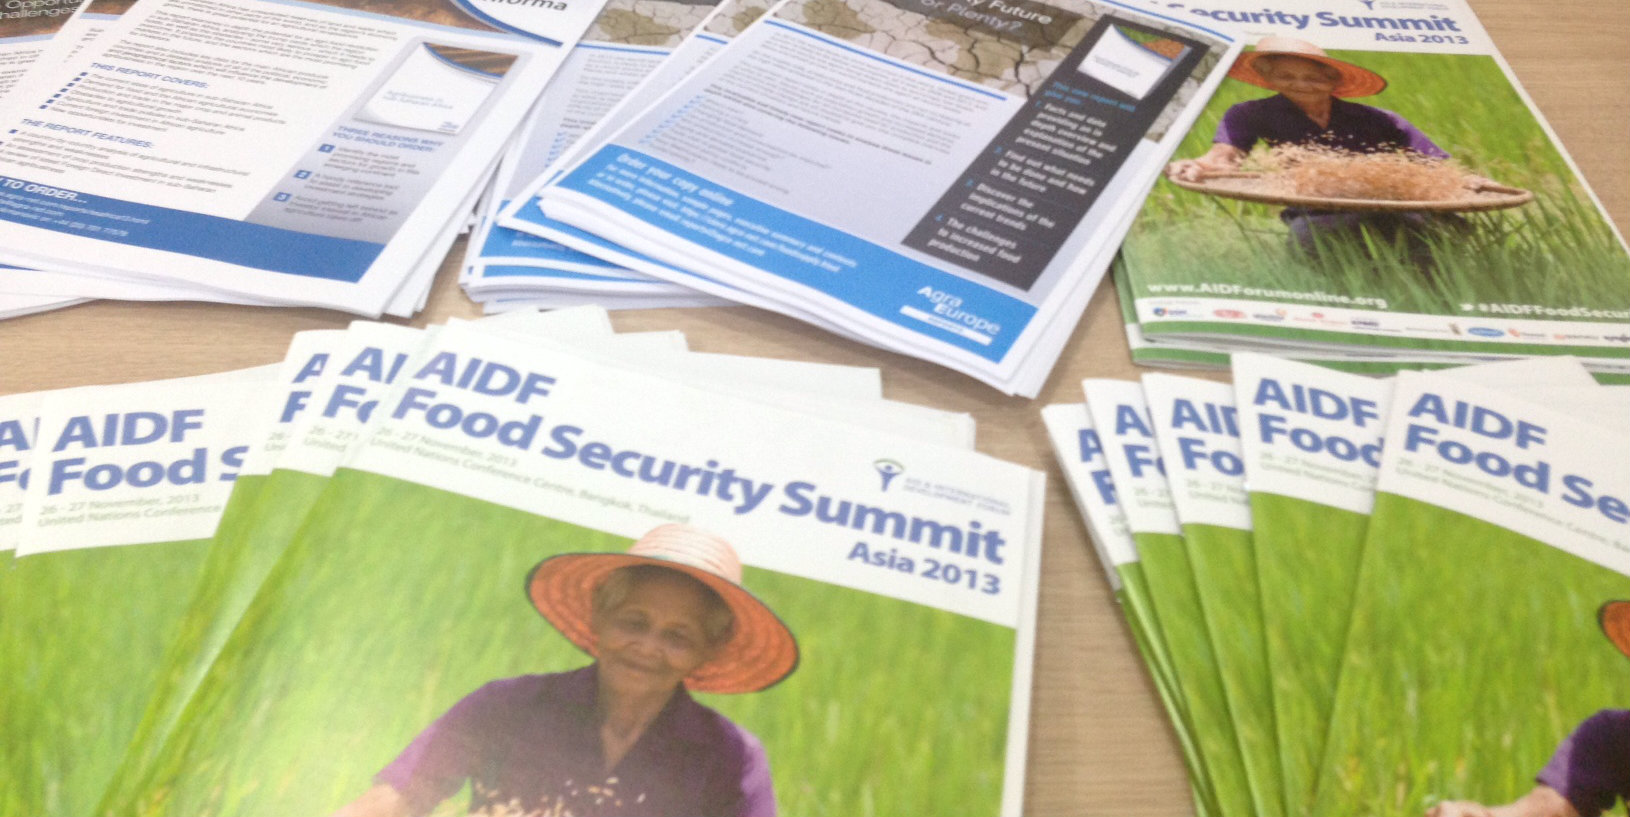 Food Security 2013: Asia report has been launched!